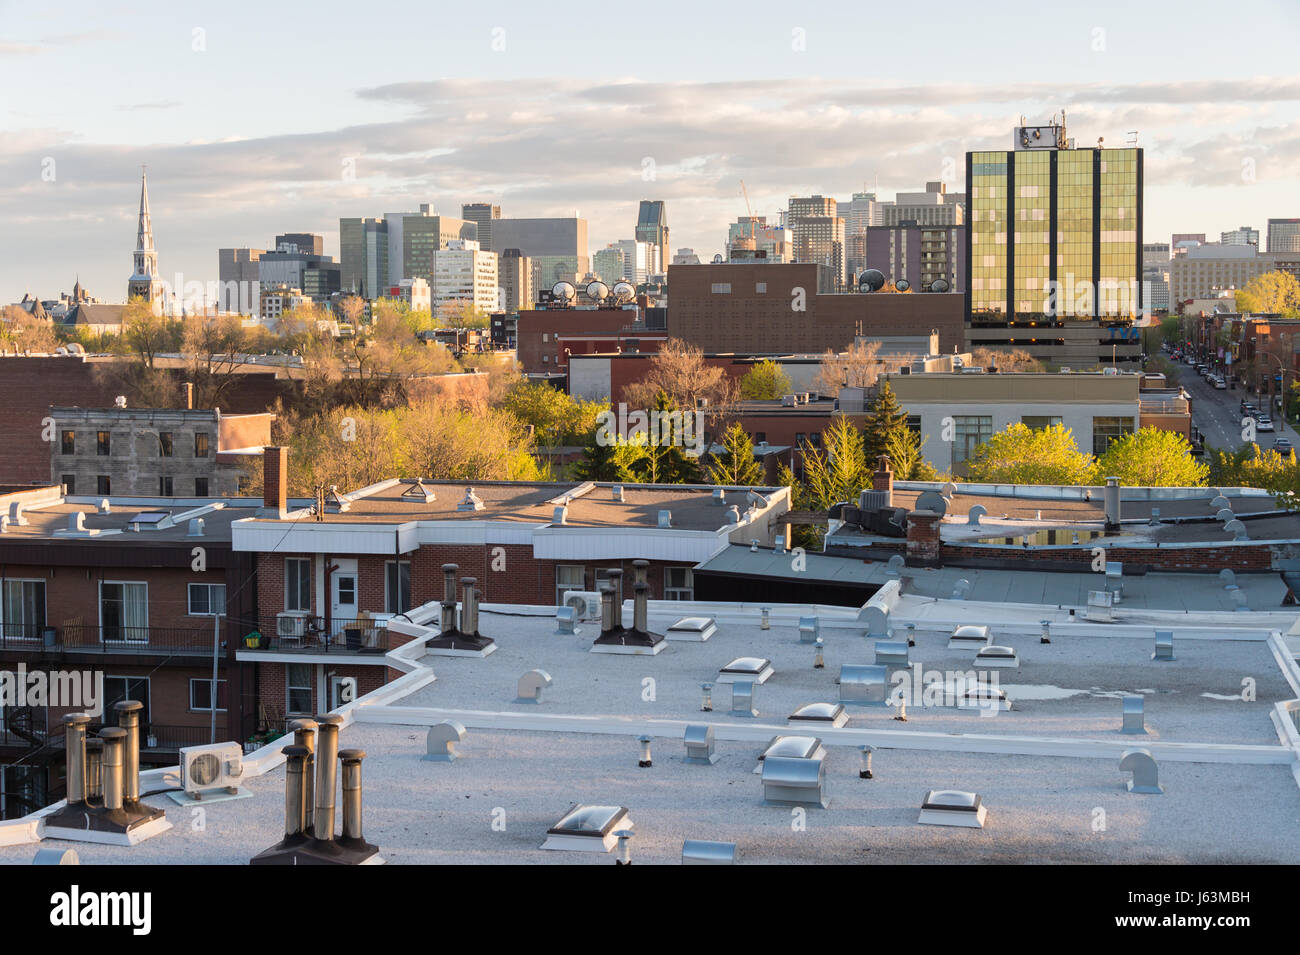 Montreal, CA - 15 May 2017: Montreal Skyline from Jacques-Cartier Bridge Stock Photo